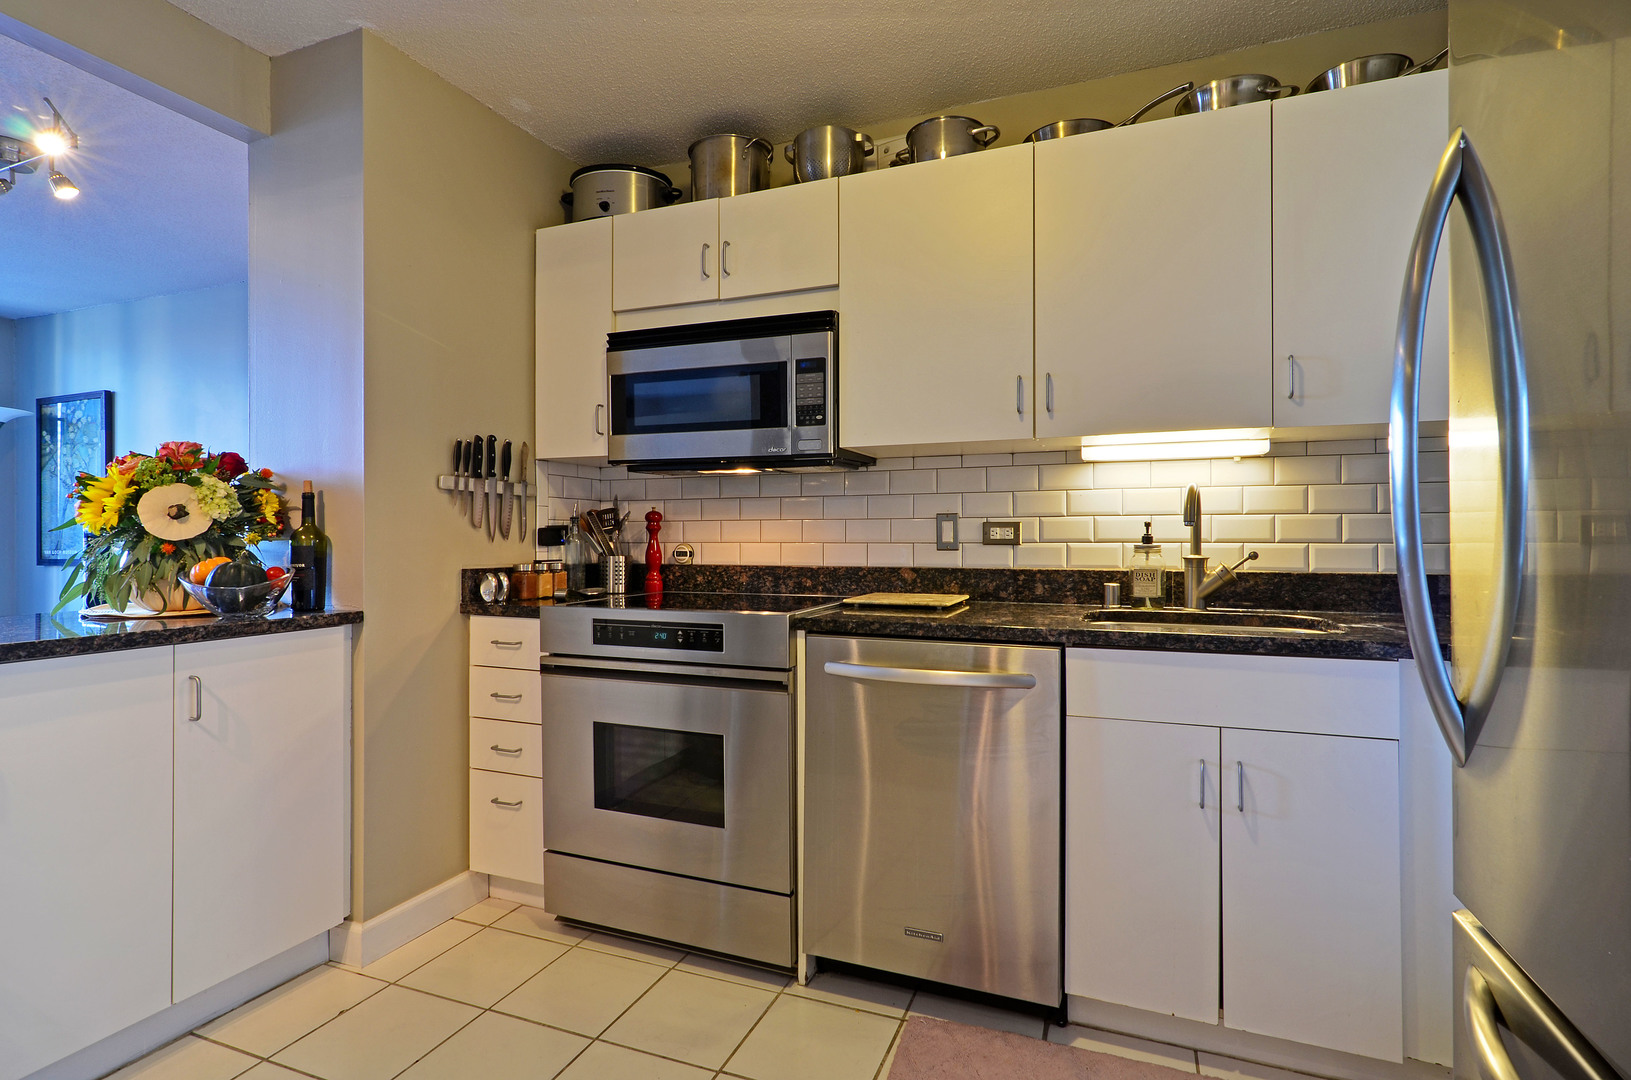 405 NORTH WABASH AVENUE #3106, CHICAGO, IL 60611  Photo 6